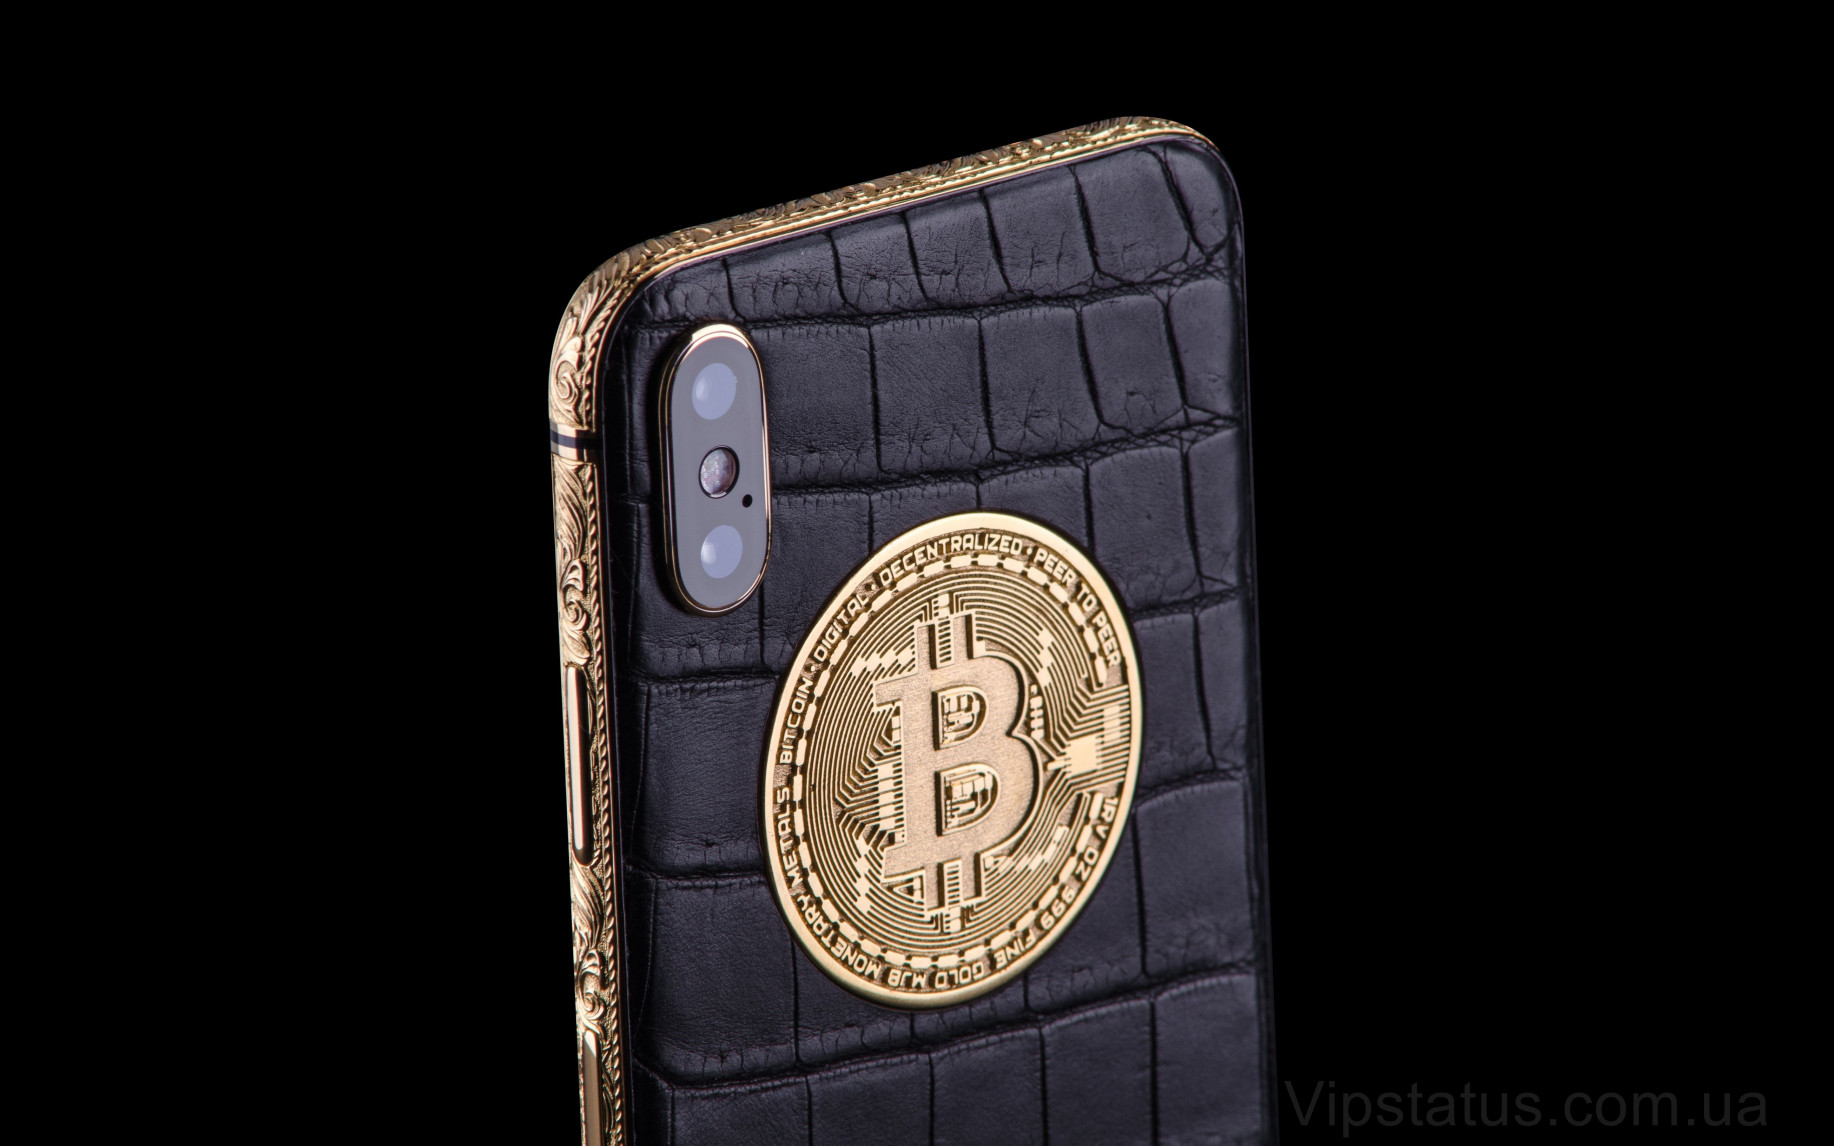 Elite Great Bitcoin IPHONE 11 PRO MAX 512 GB Great Bitcoin IPHONE 11 PRO MAX 512 GB image 3